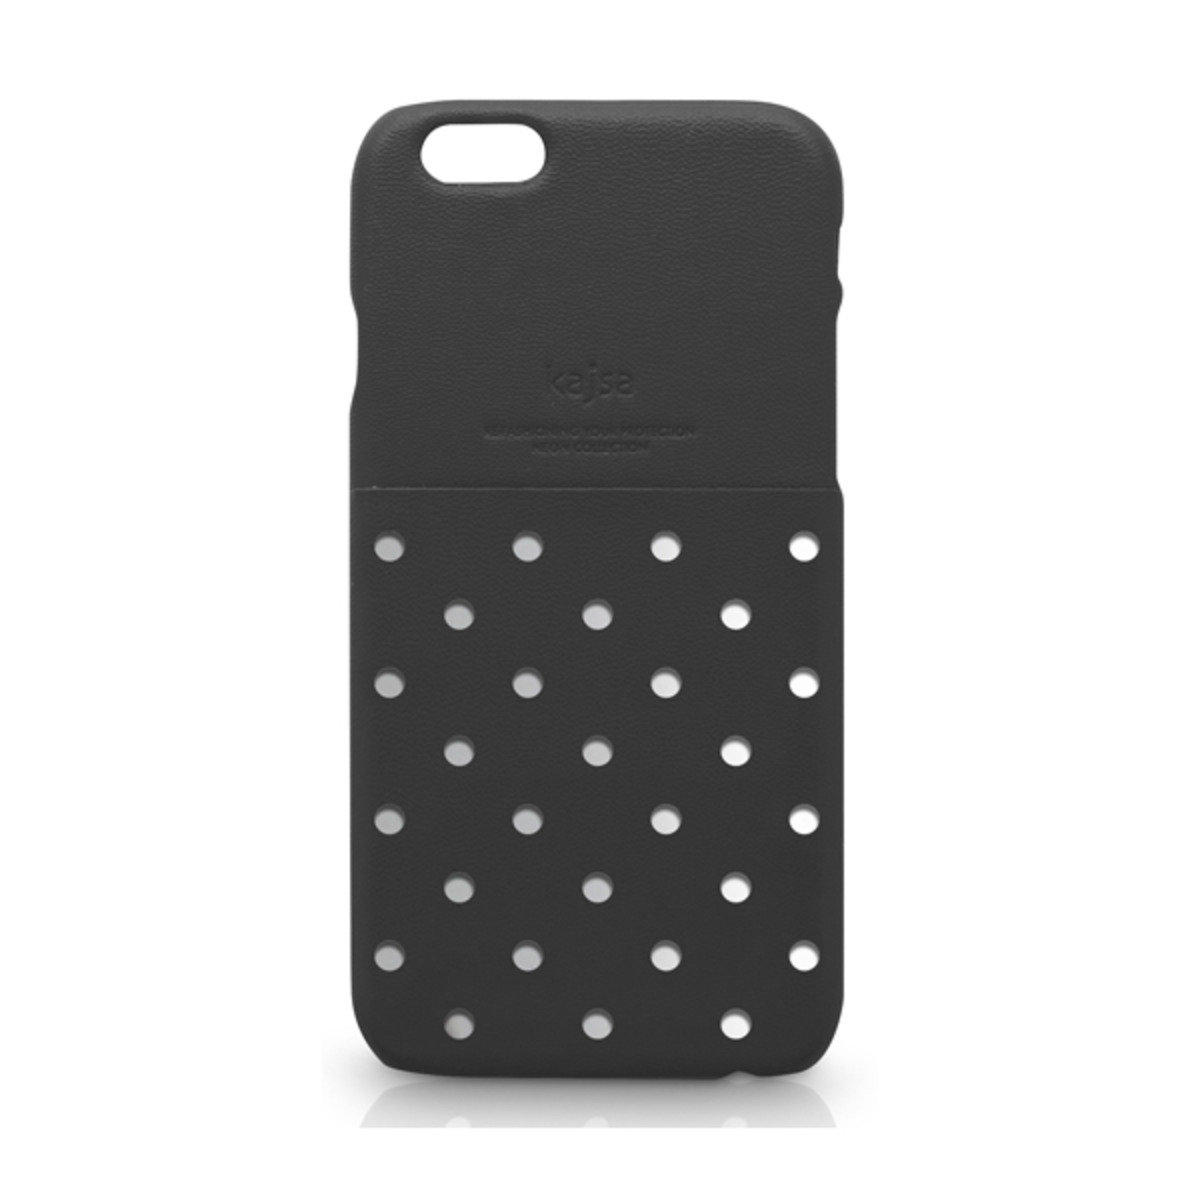 iPhone 6+ (5.5'') 電話殼: Neon Collection Polka Dot Pattern pocket backcase - Black